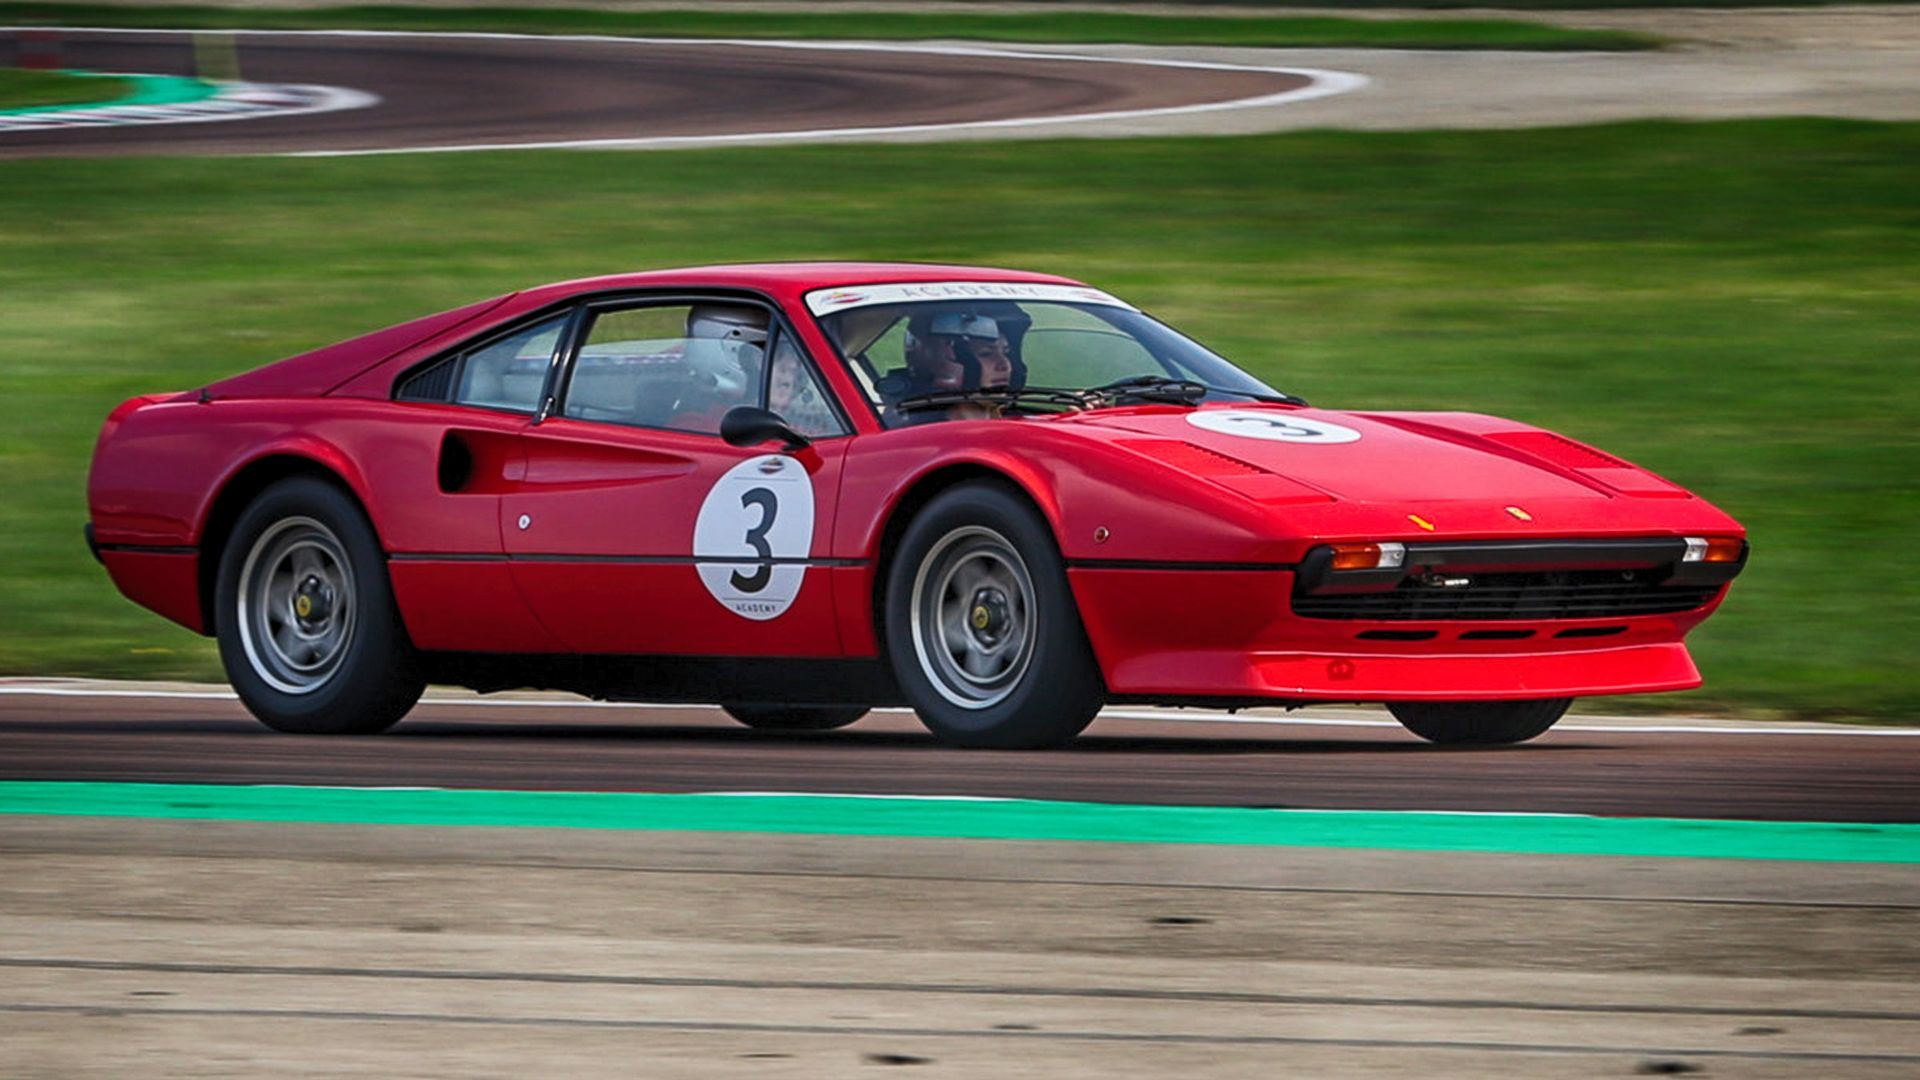 You can now experience classic Ferraris in Italy